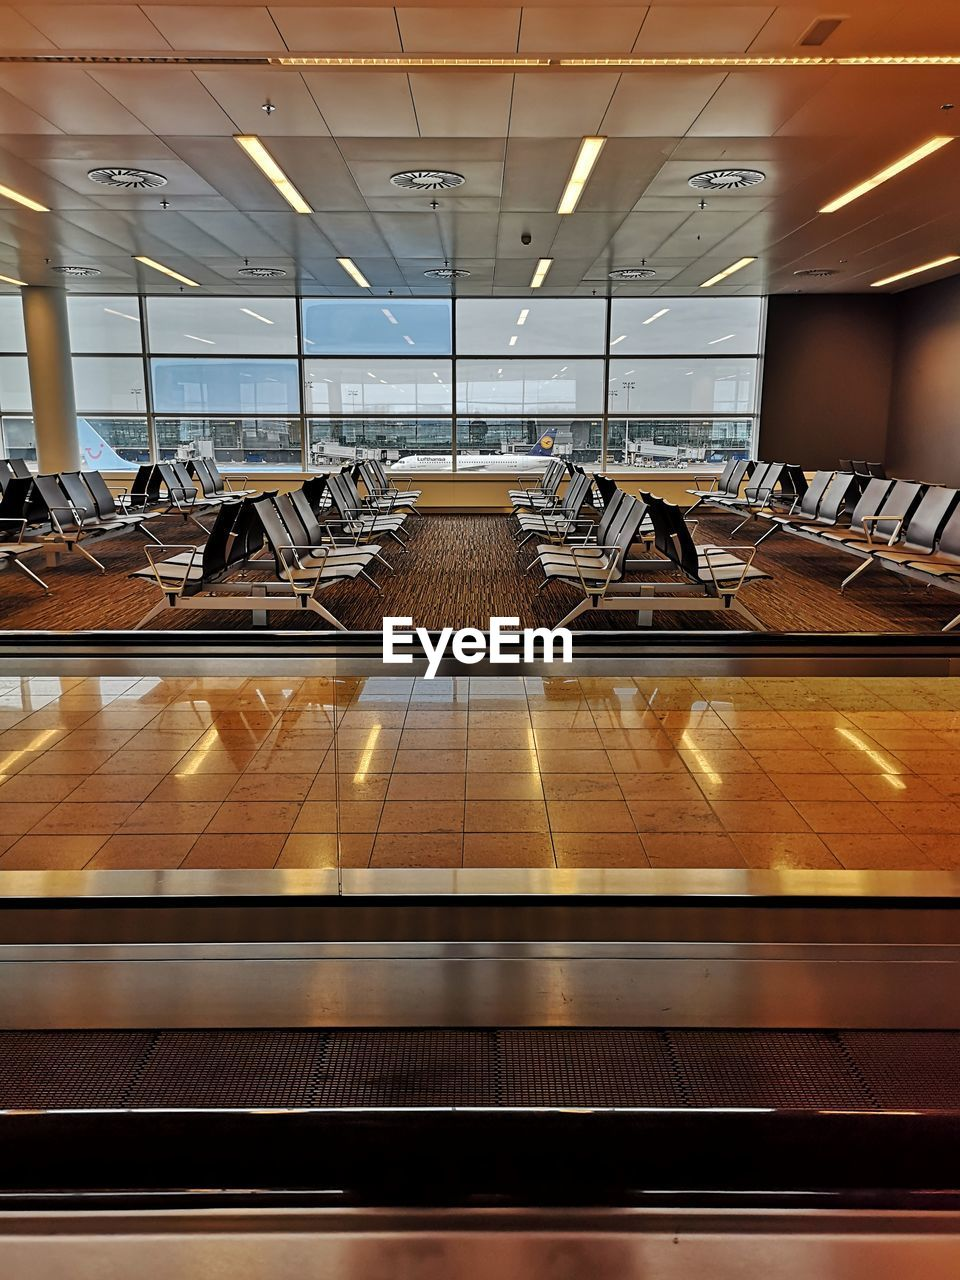 indoors, absence, seat, no people, window, airport, flooring, empty, architecture, reflection, illuminated, ceiling, day, glass - material, modern, airport departure area, chair, built structure, tile, tiled floor, airport terminal